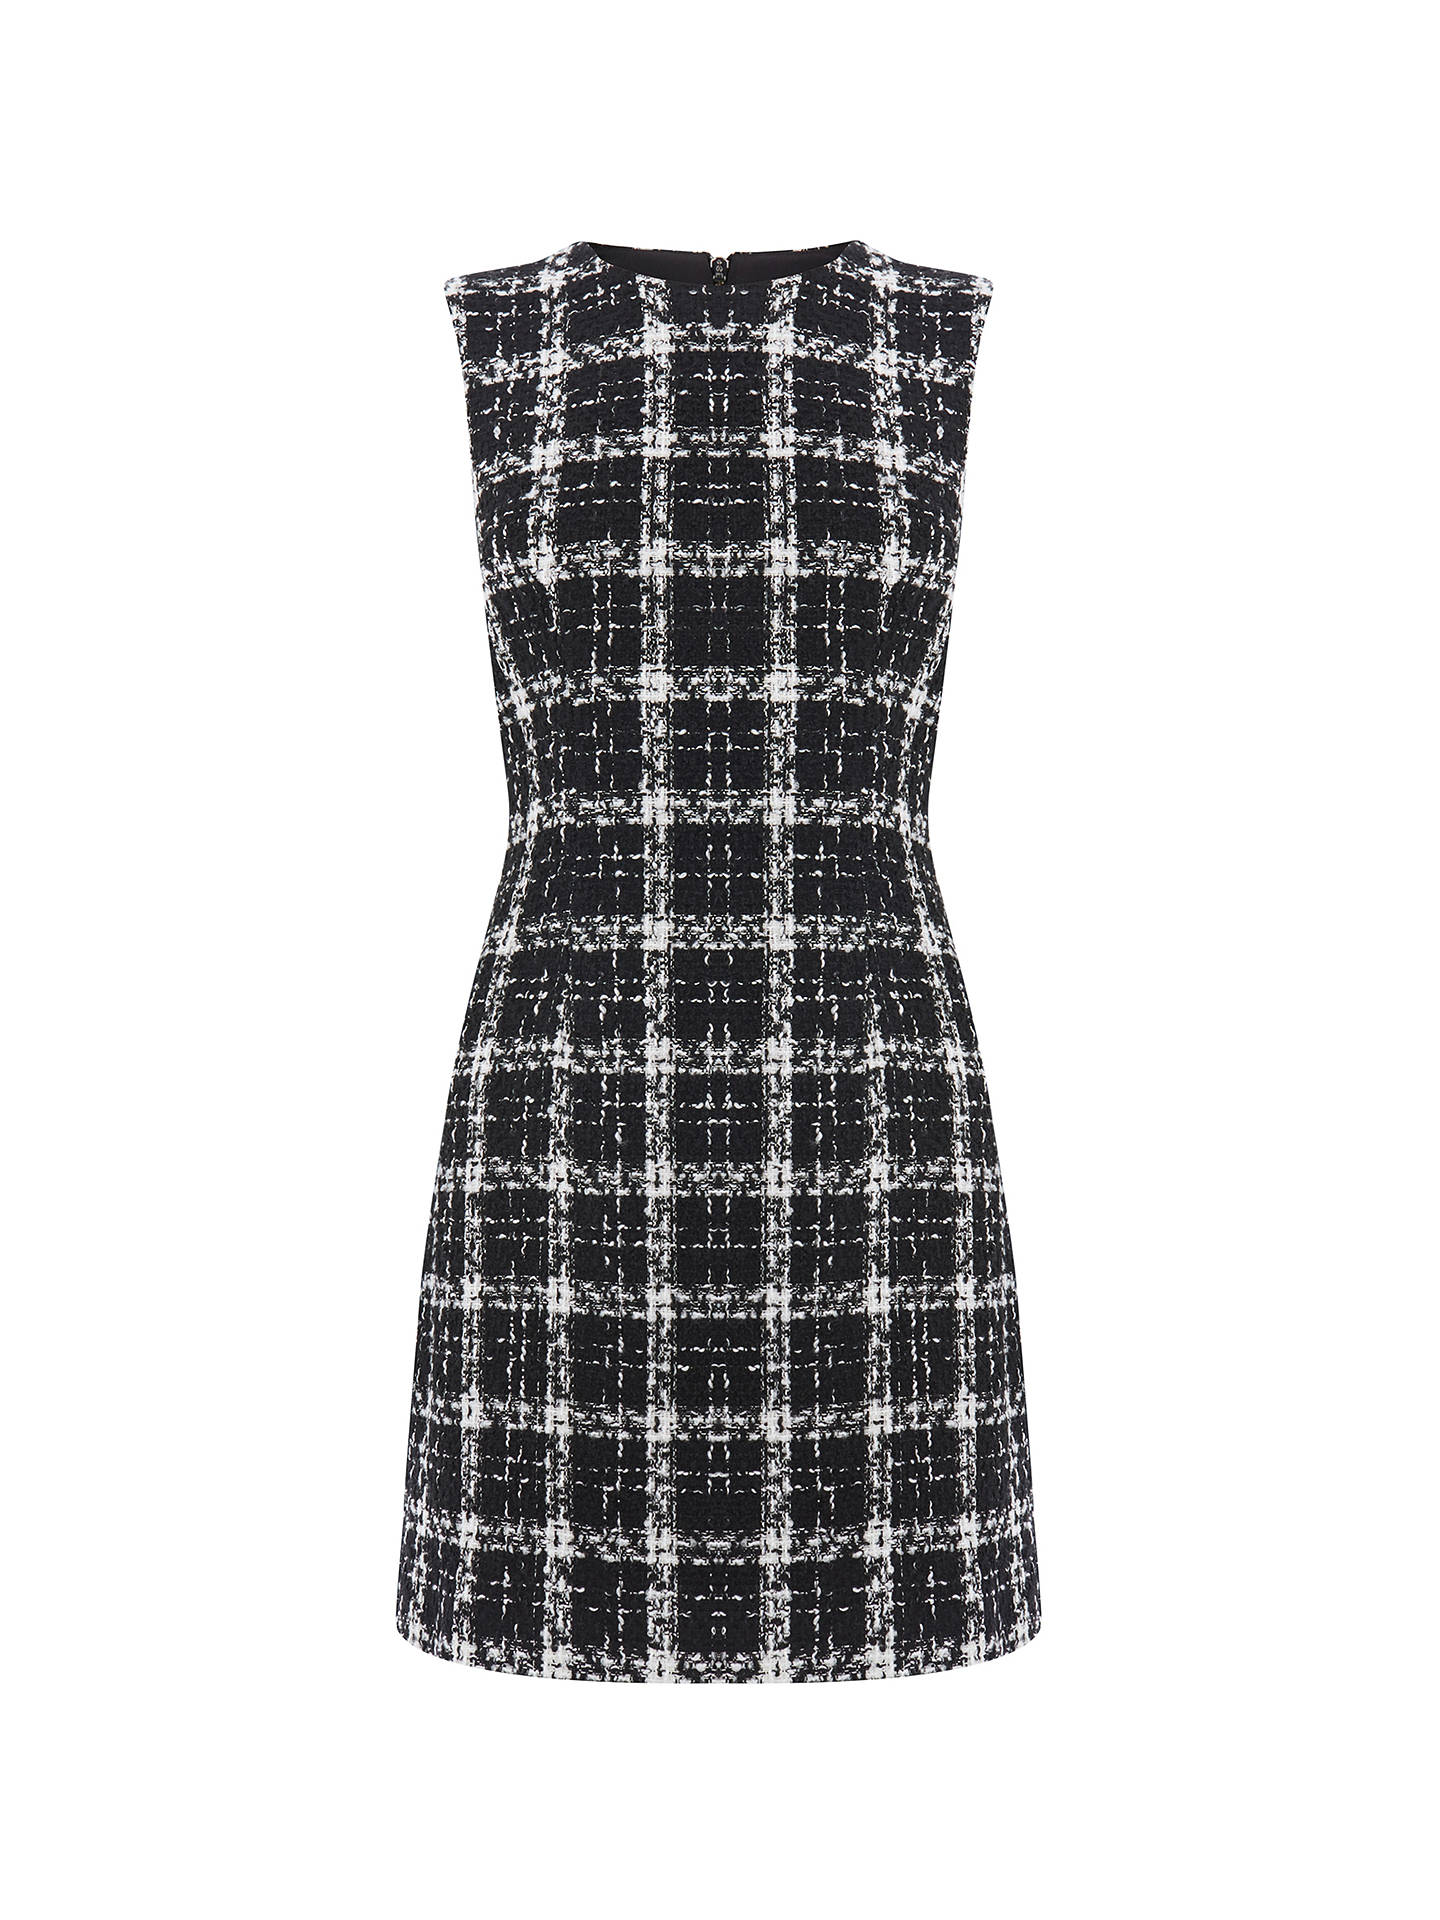 BuyWarehouse Tweed Check Dress, Multi, 6 Online at johnlewis.com